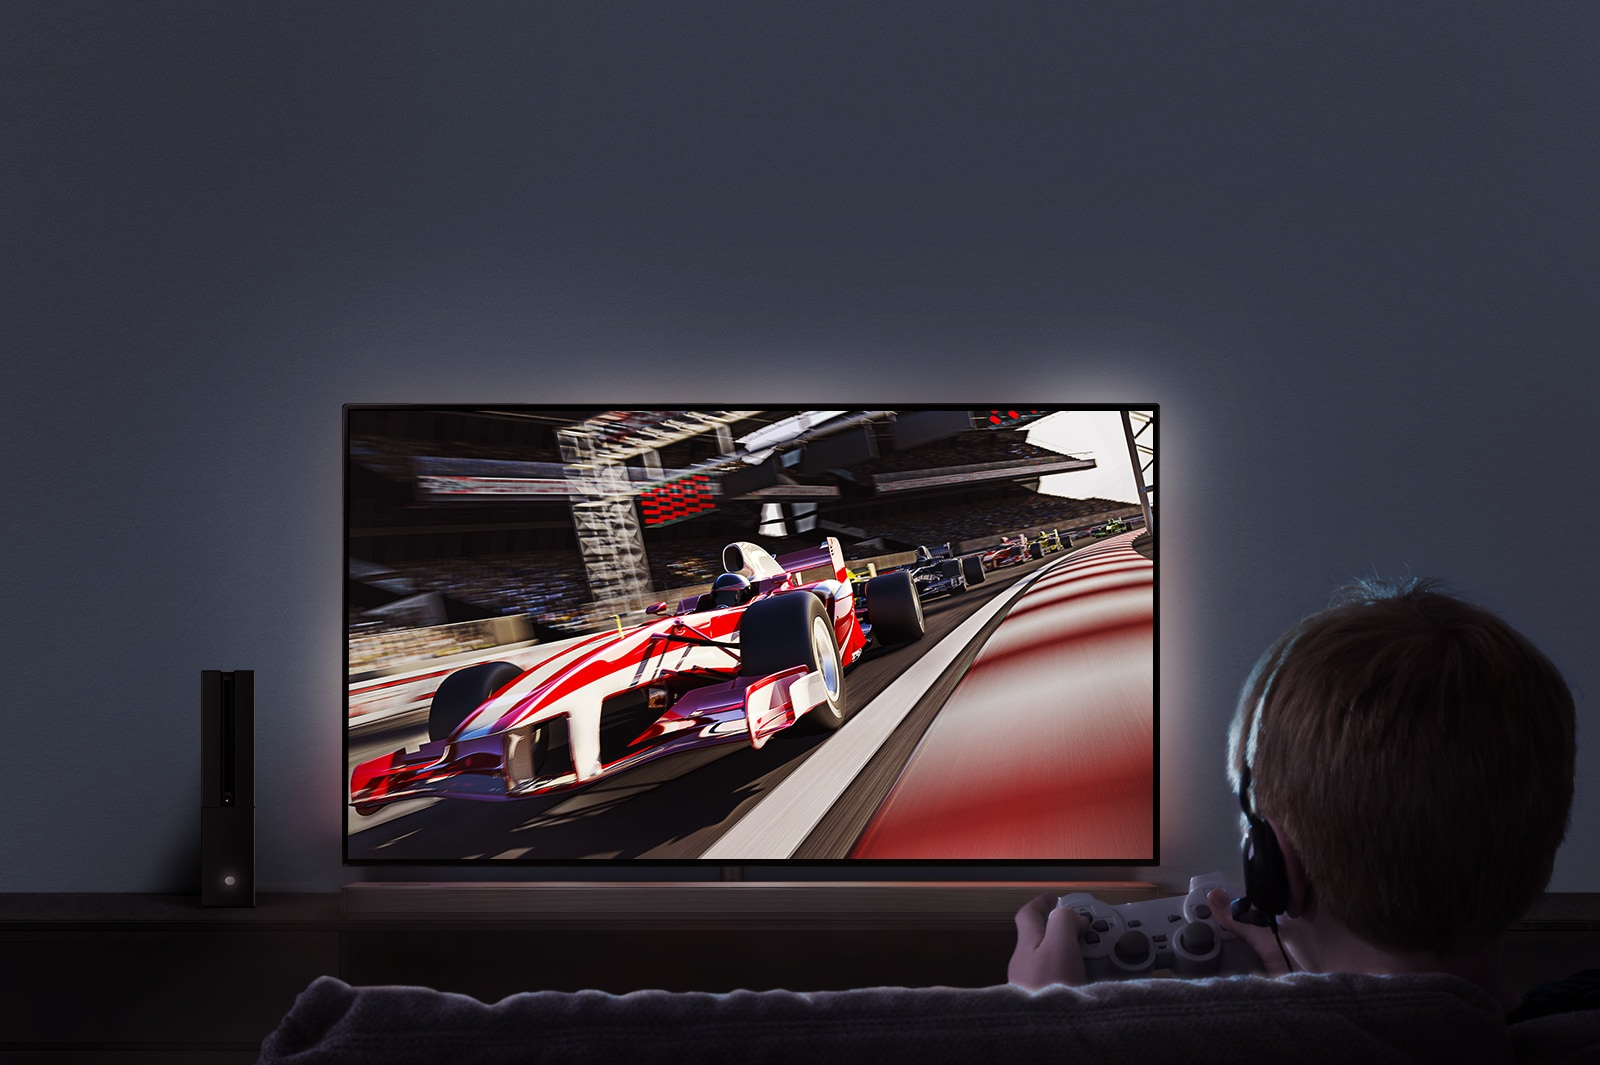 LG TV's - Smooth and fast 4K HDR gaming